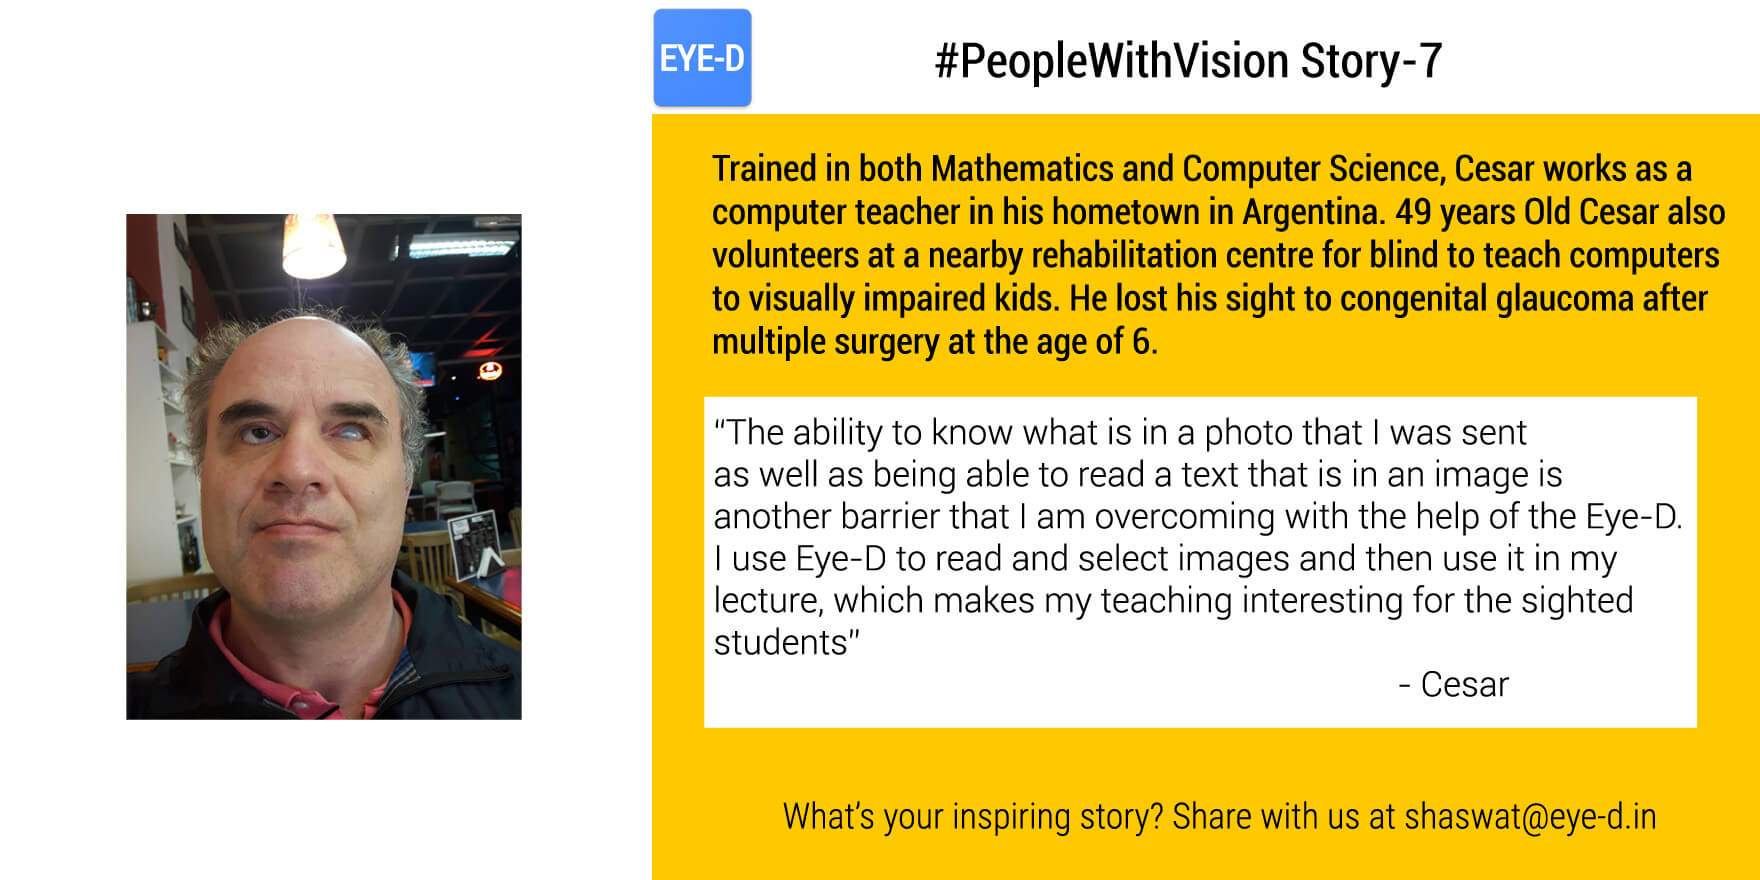 Cesar's people with vision story talks about how Cesar established himself as a computer instructor at a conventional school despite of loosing vision at the age of 6. He feels empowered when he can read images and text in the images by using EyeD. He even uses Eye-D to pick suitable images for his lecture to make it interesting for the sighted kids.